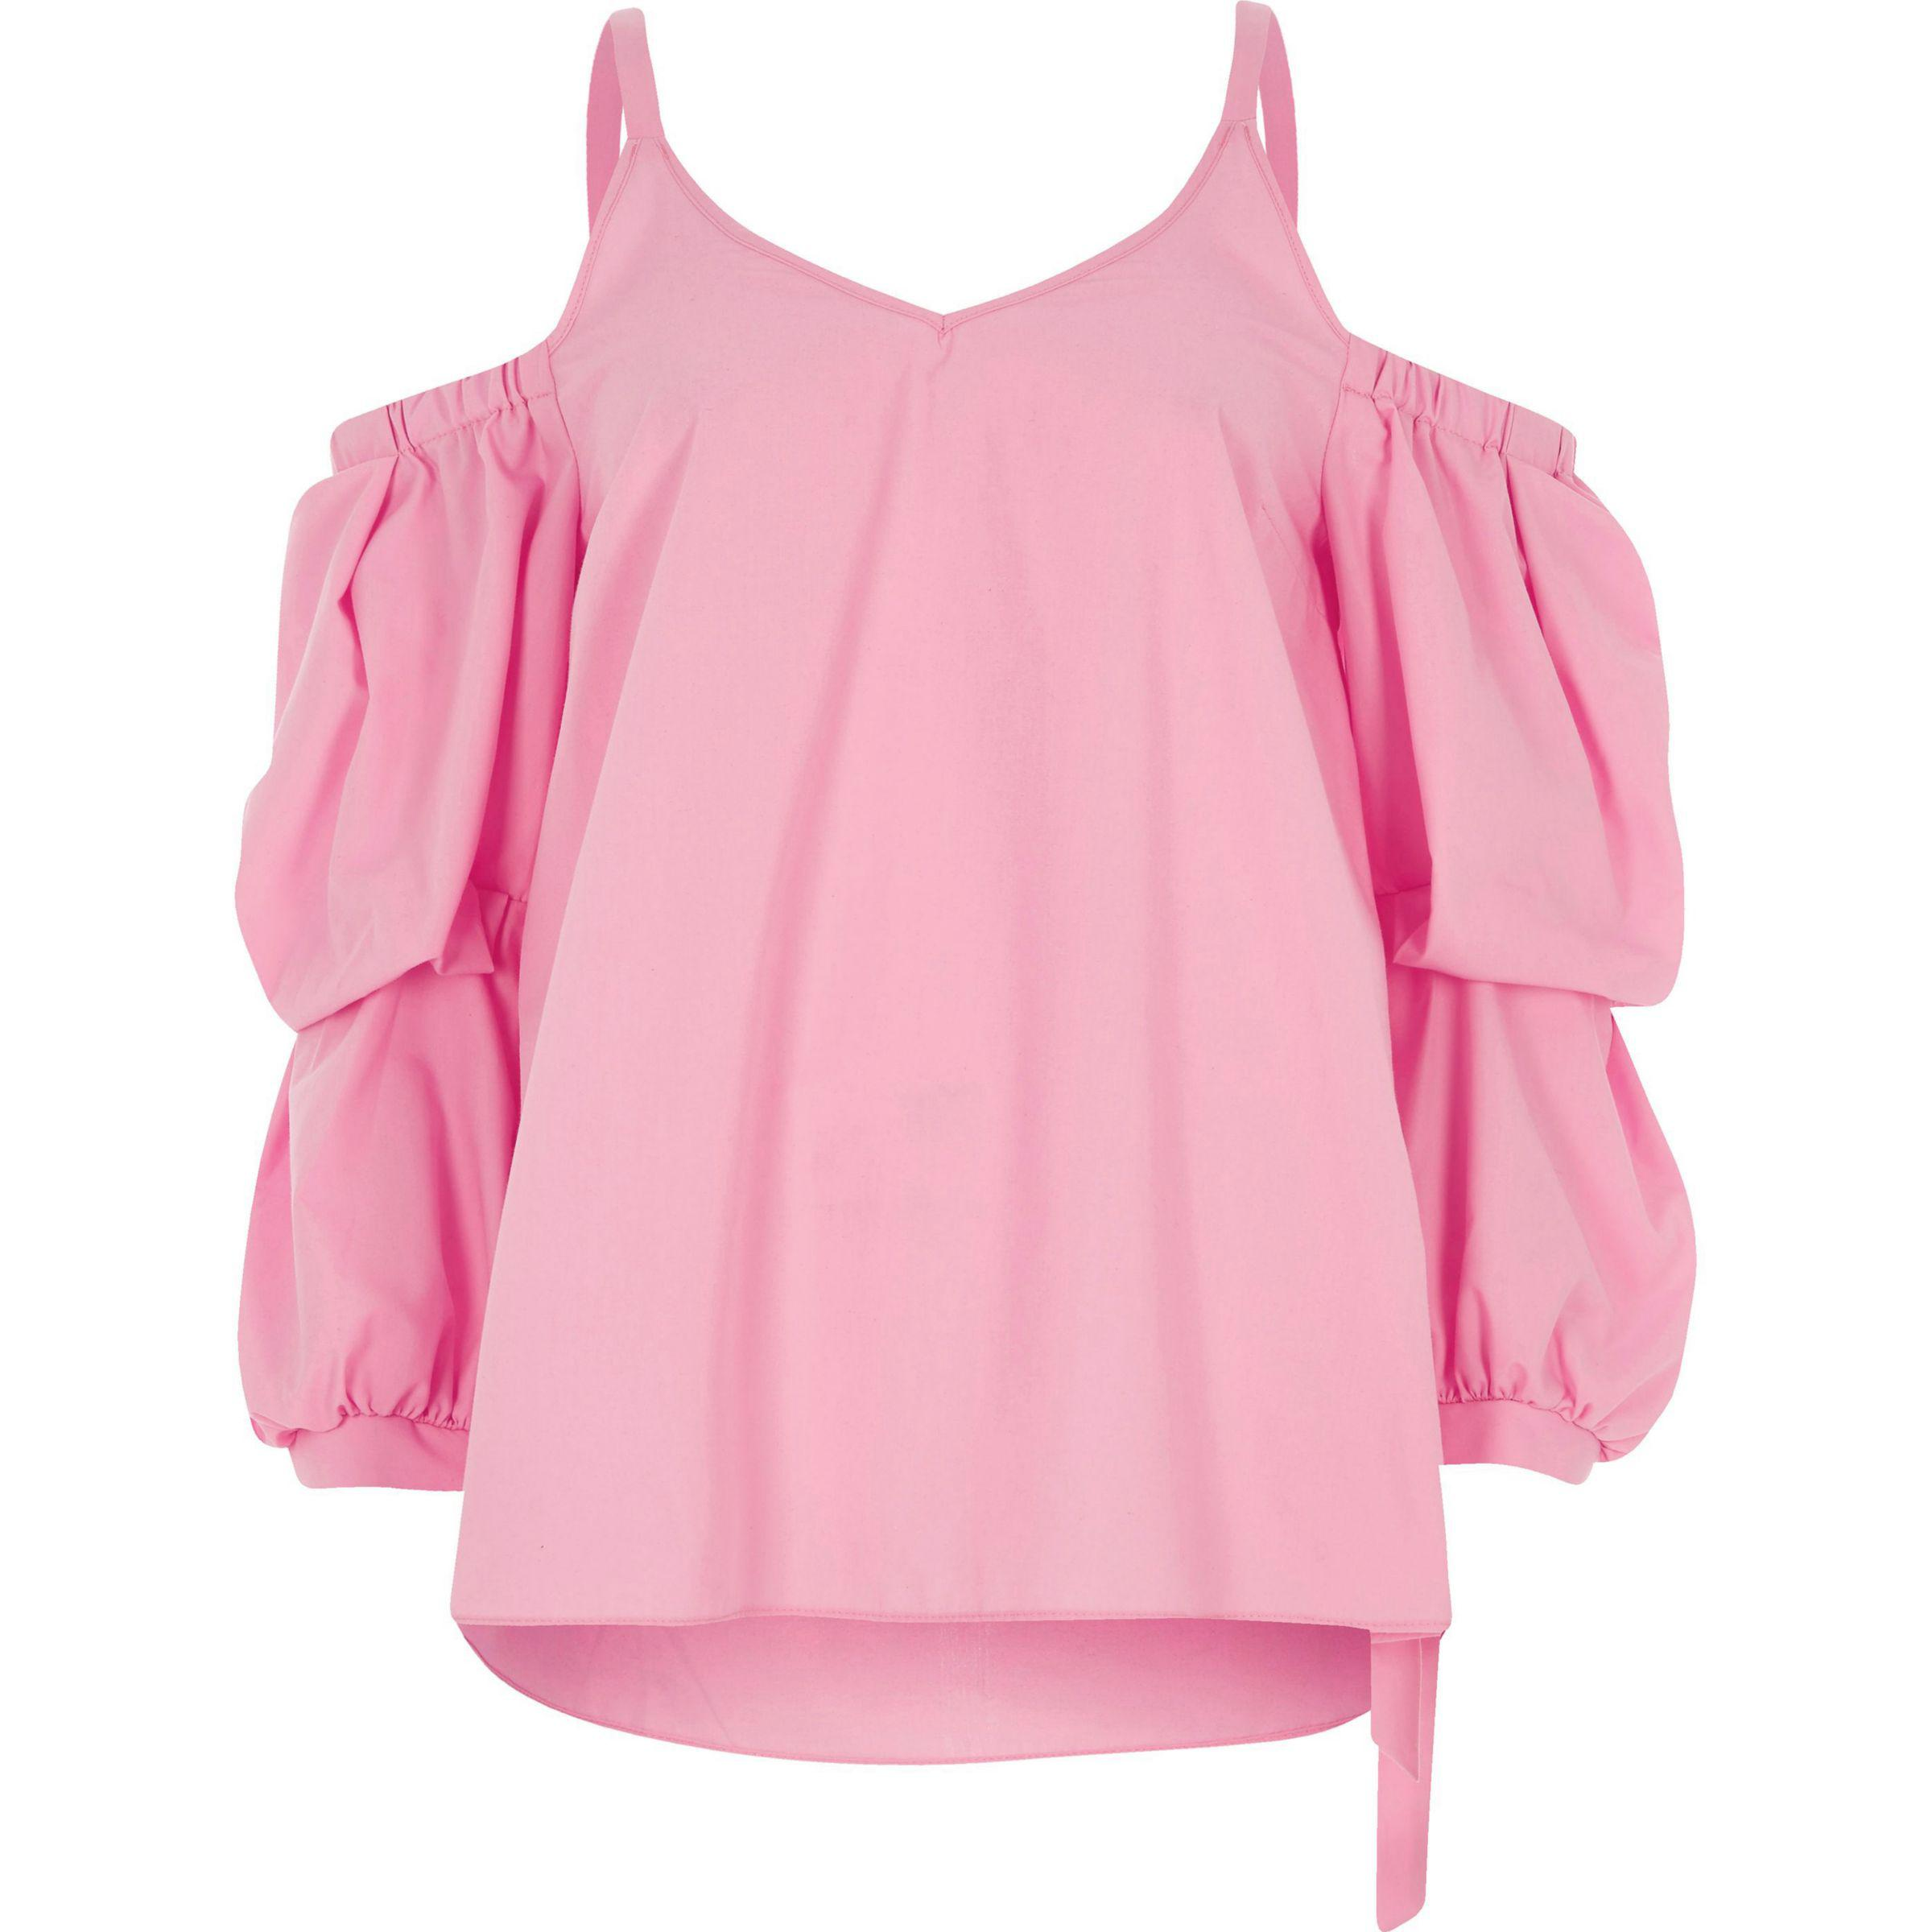 9aeac16d20a River Island Pink Puff Sleeve Cold Shoulder Top in Pink - Lyst